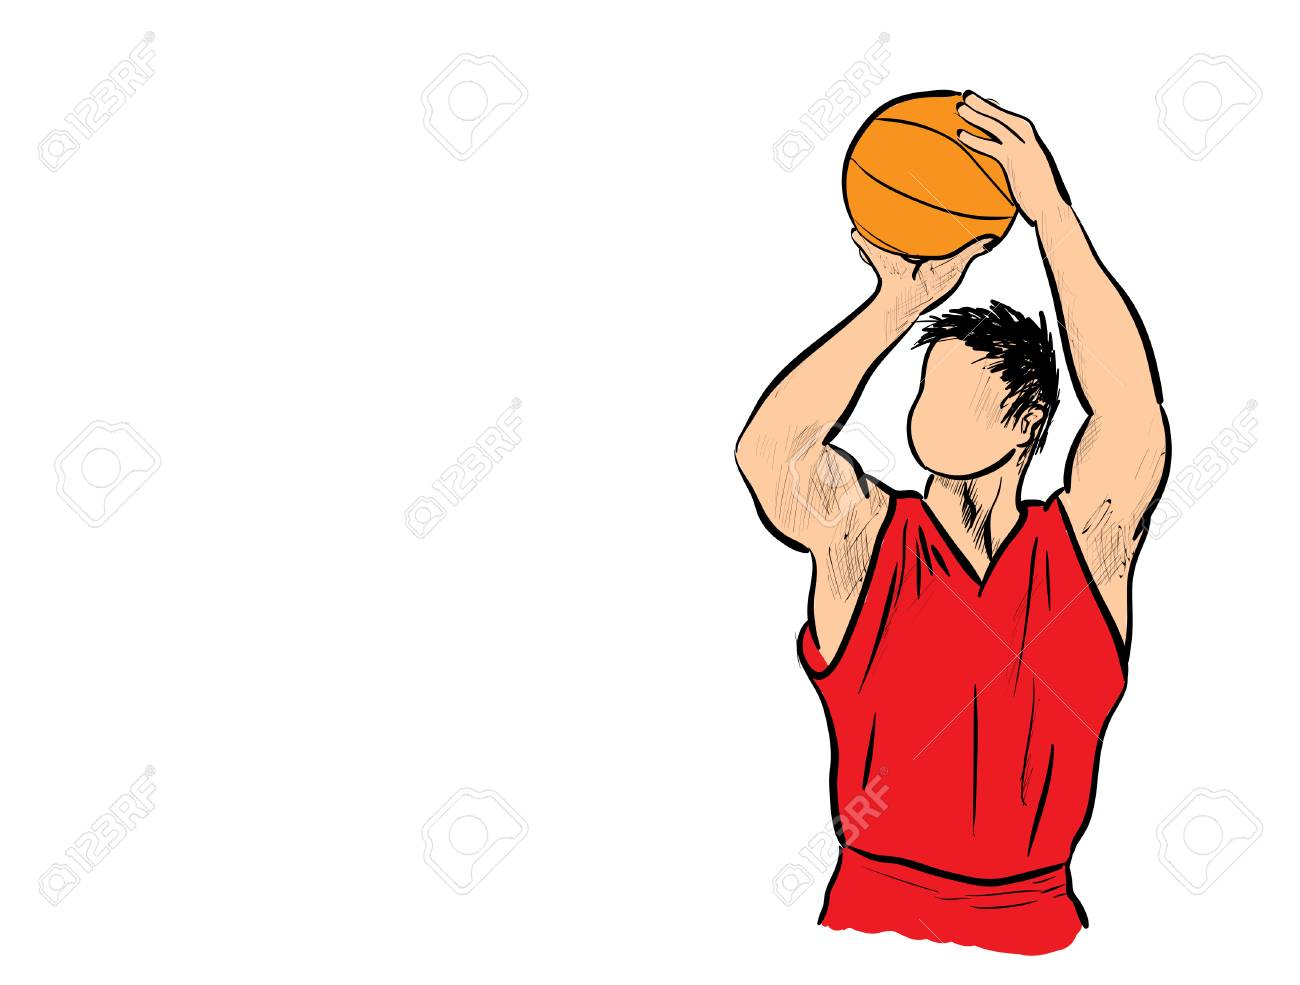 Man shooting basketball.